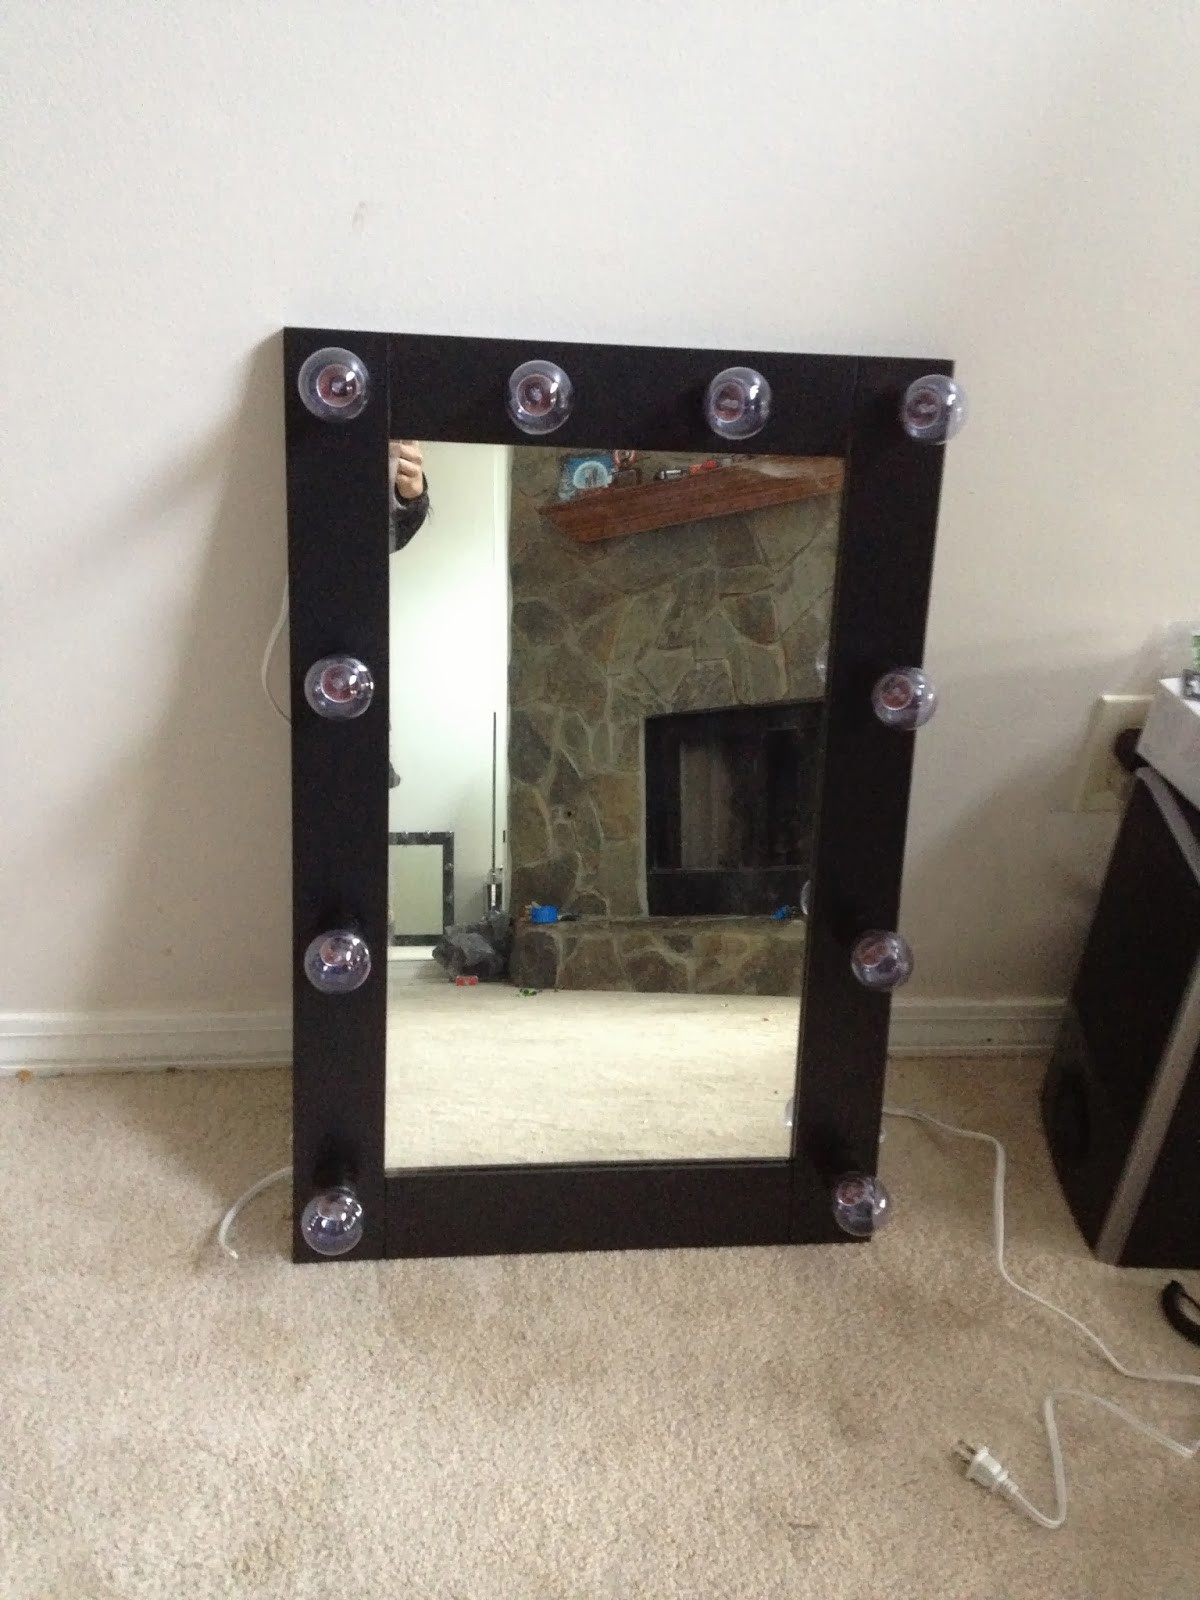 Best ideas about DIY Makeup Mirrors With Lights . Save or Pin Beauty Fashion and Lifestyle Blog DIY Lighted Makeup Now.